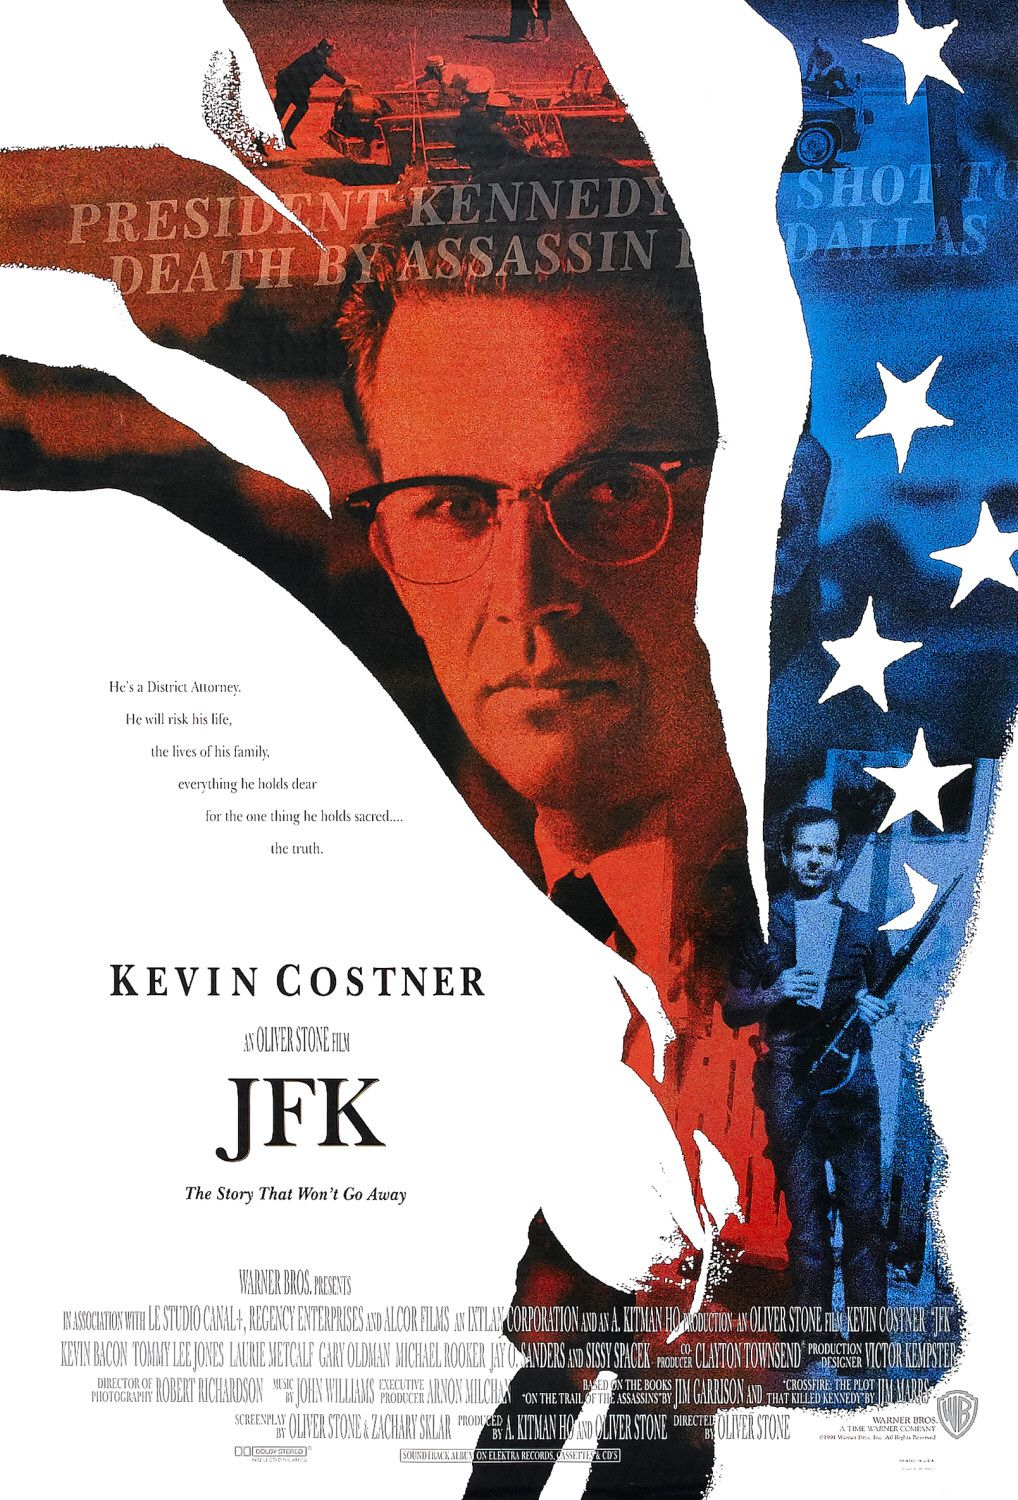 JFK (1991) Technical Specifications